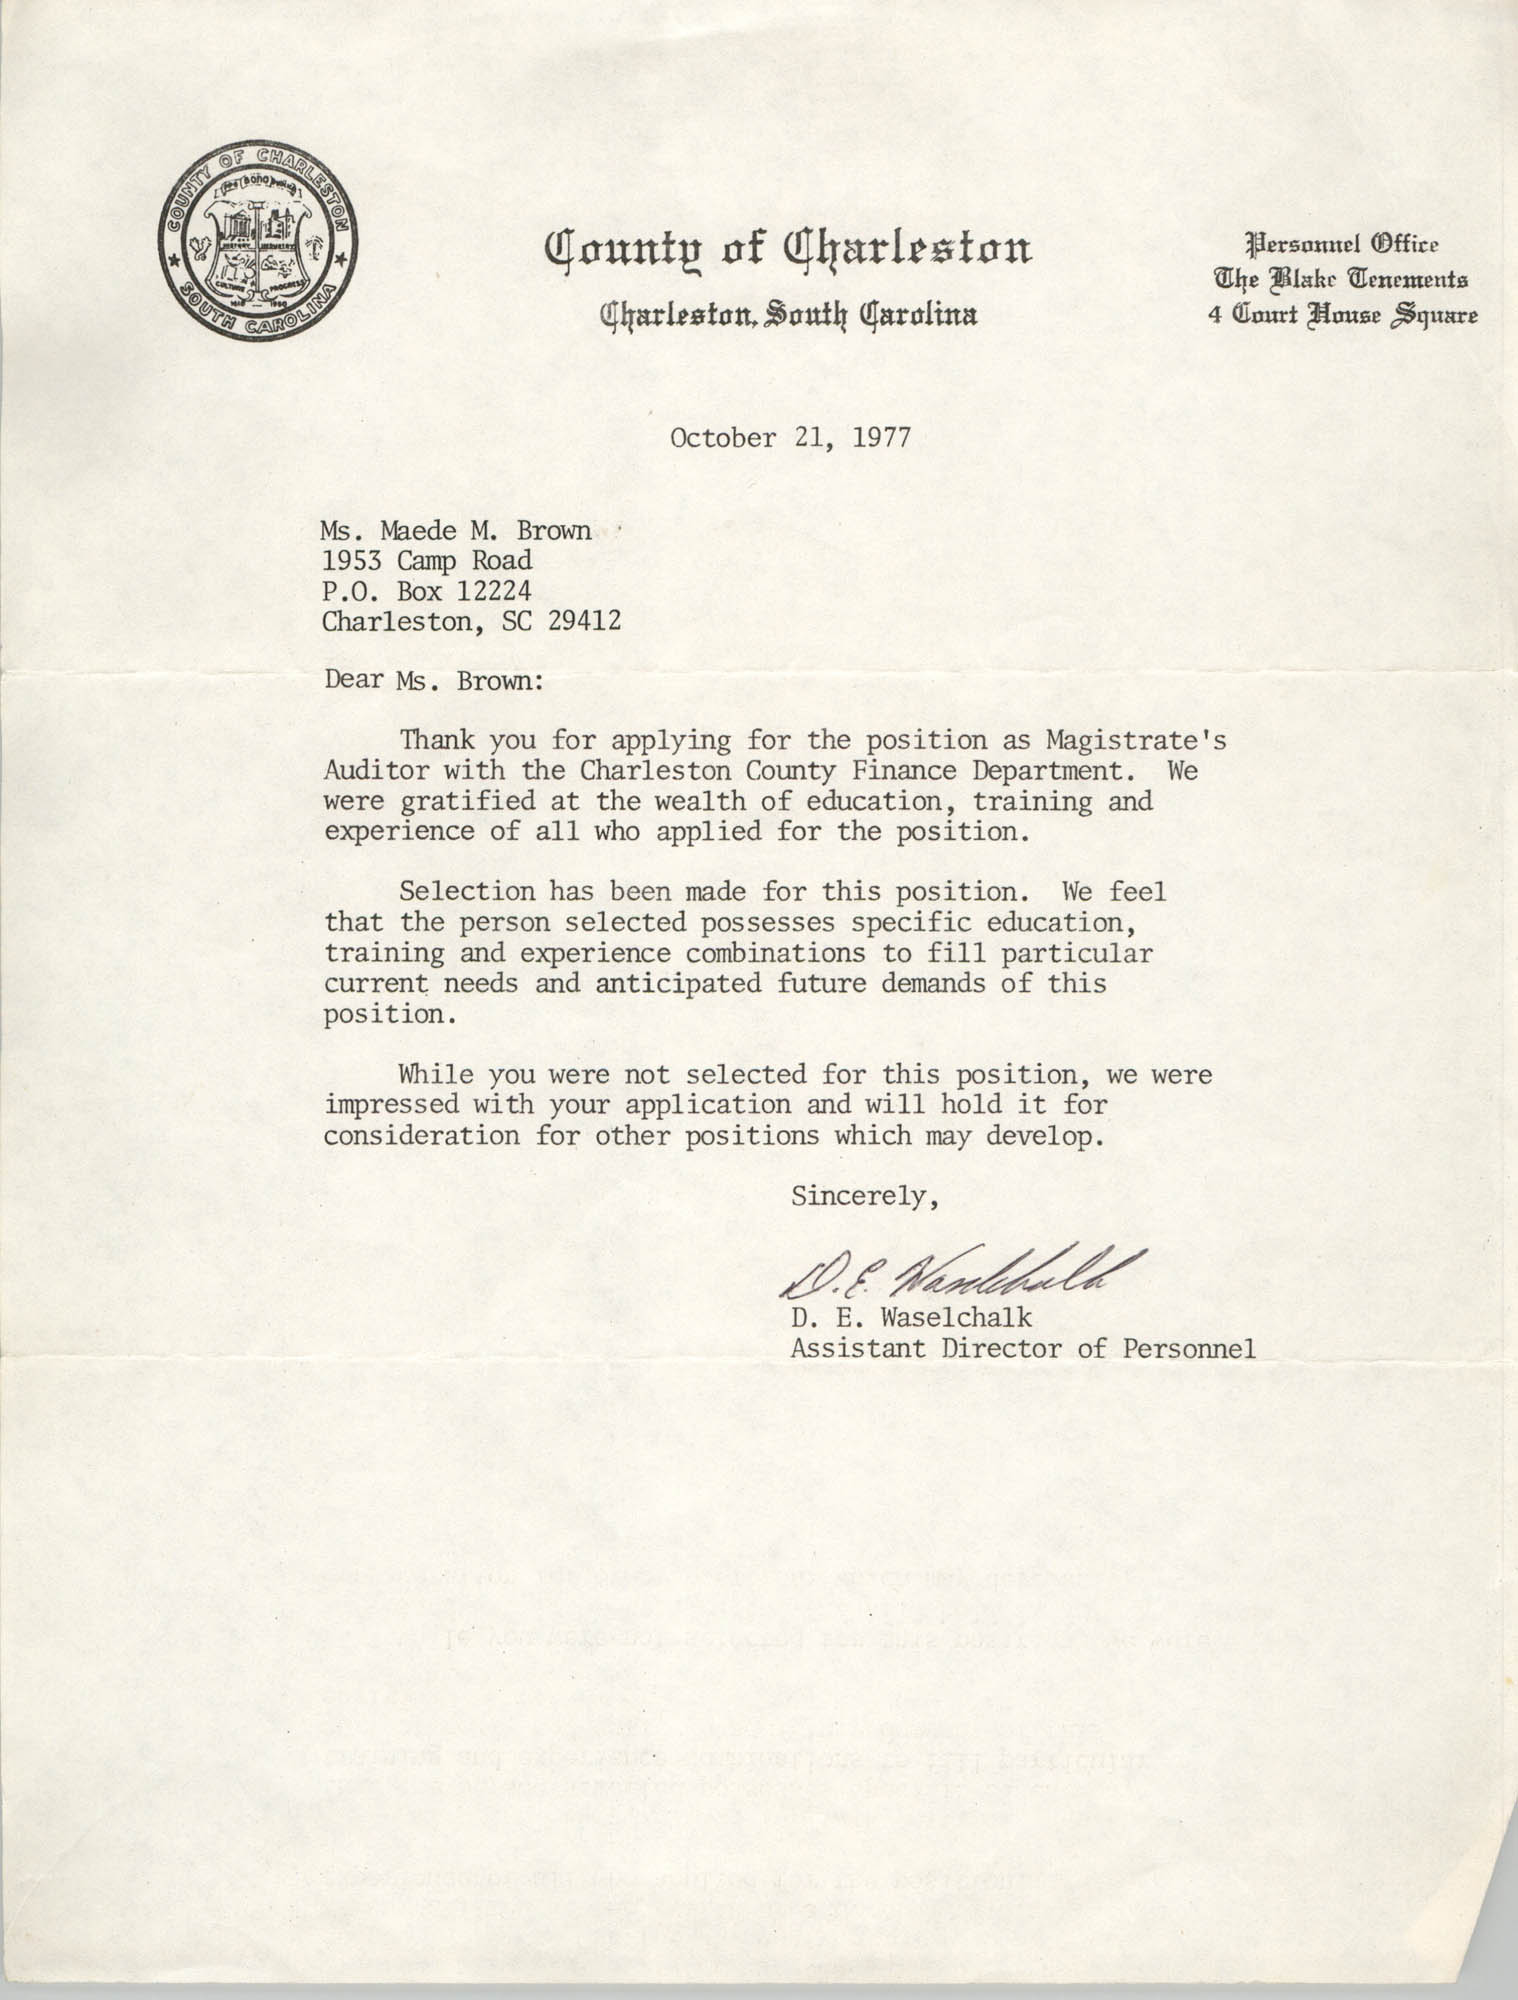 Letter from D. E. Waselchalk to Maede M. Brown, October 21, 1977